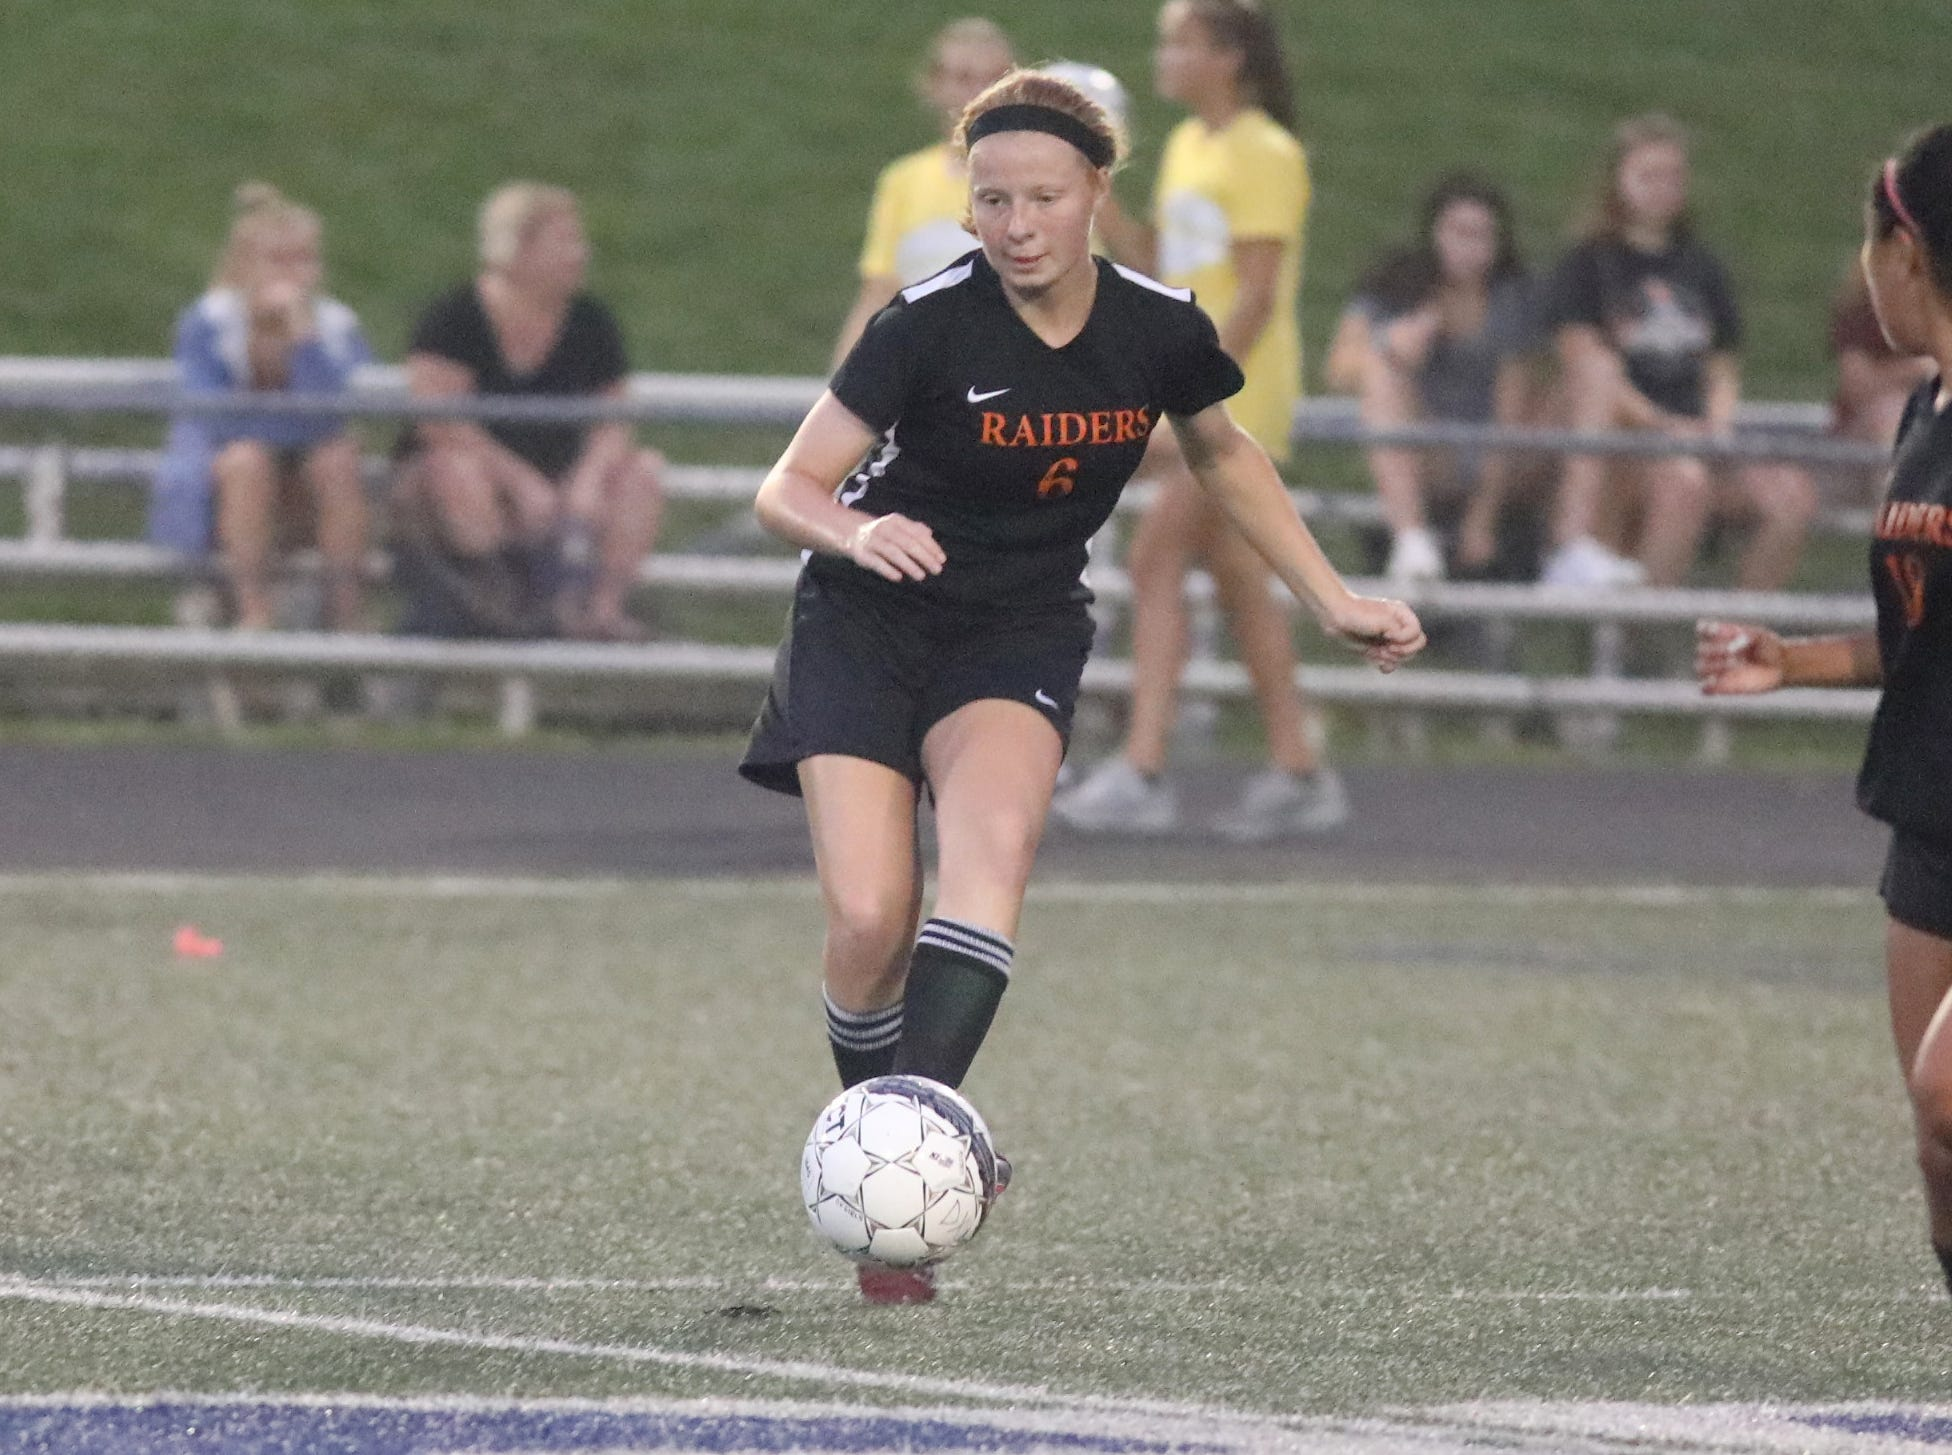 Ryle's  Kaia  Griffin  (6) kicks in the game against Turpin during Soccerama, Saturday, Aug. 11, 2018.